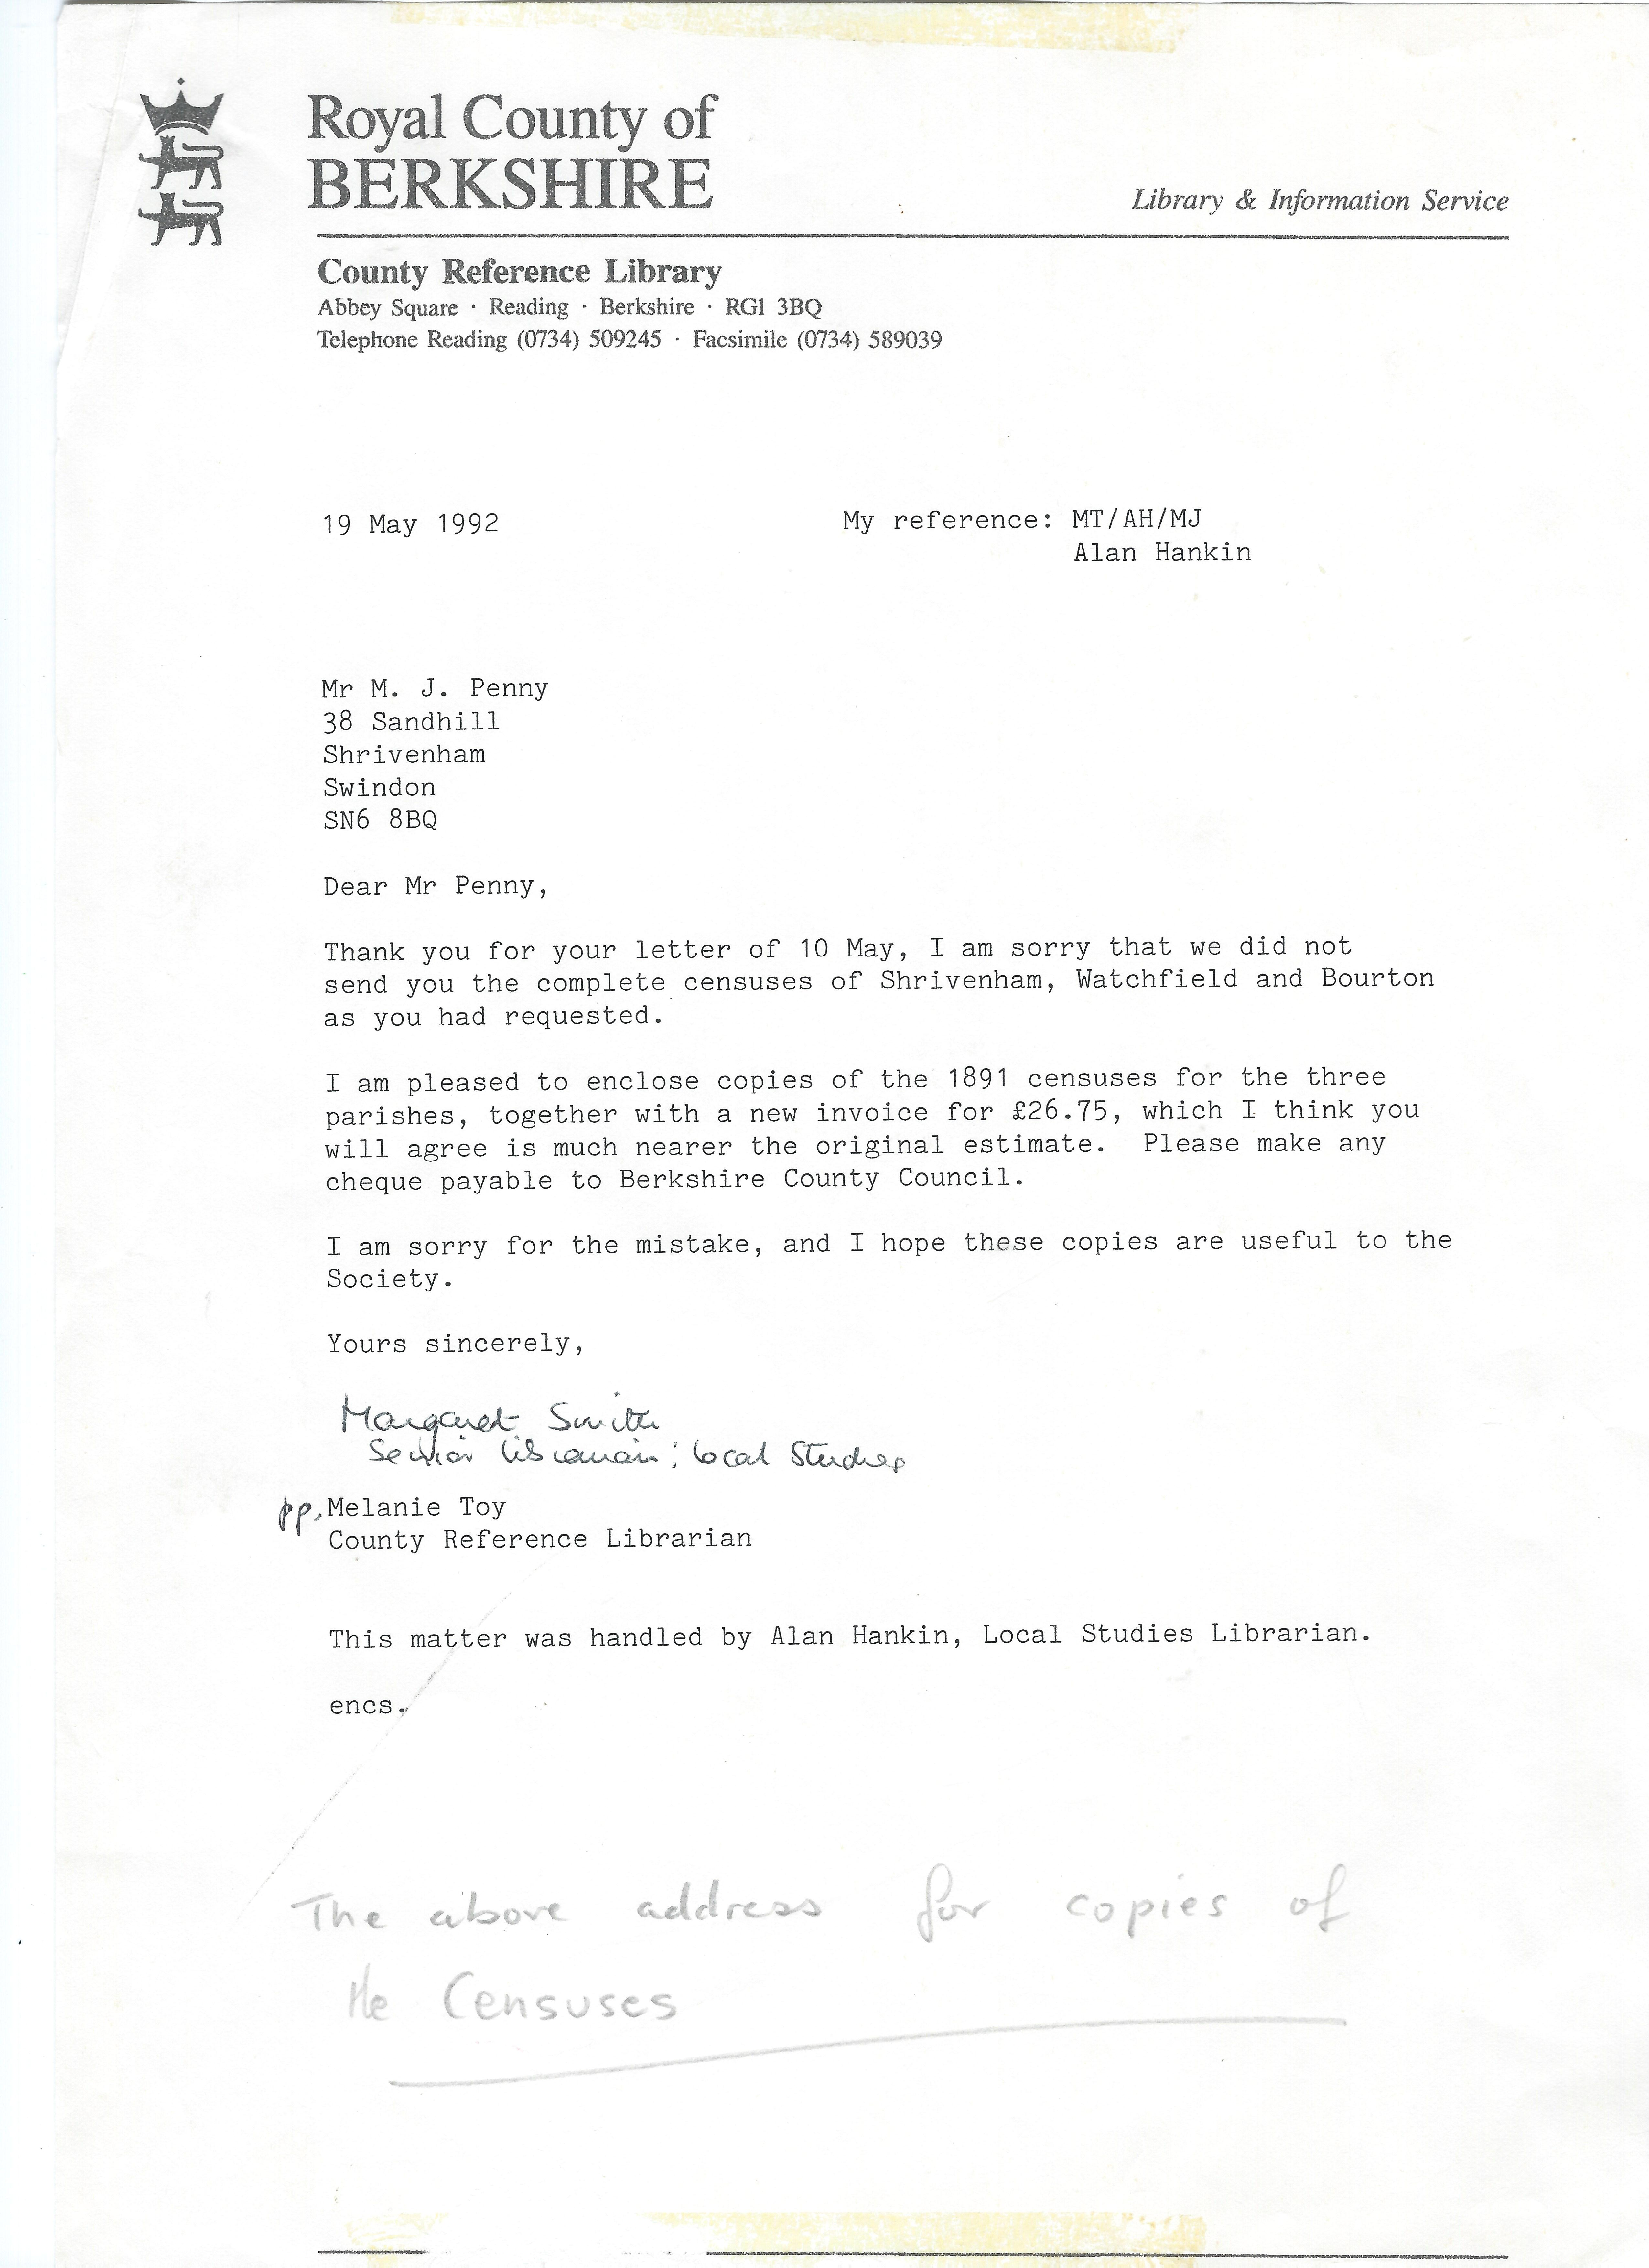 Letter to Merv Penny ref the photocopies of the Census papers